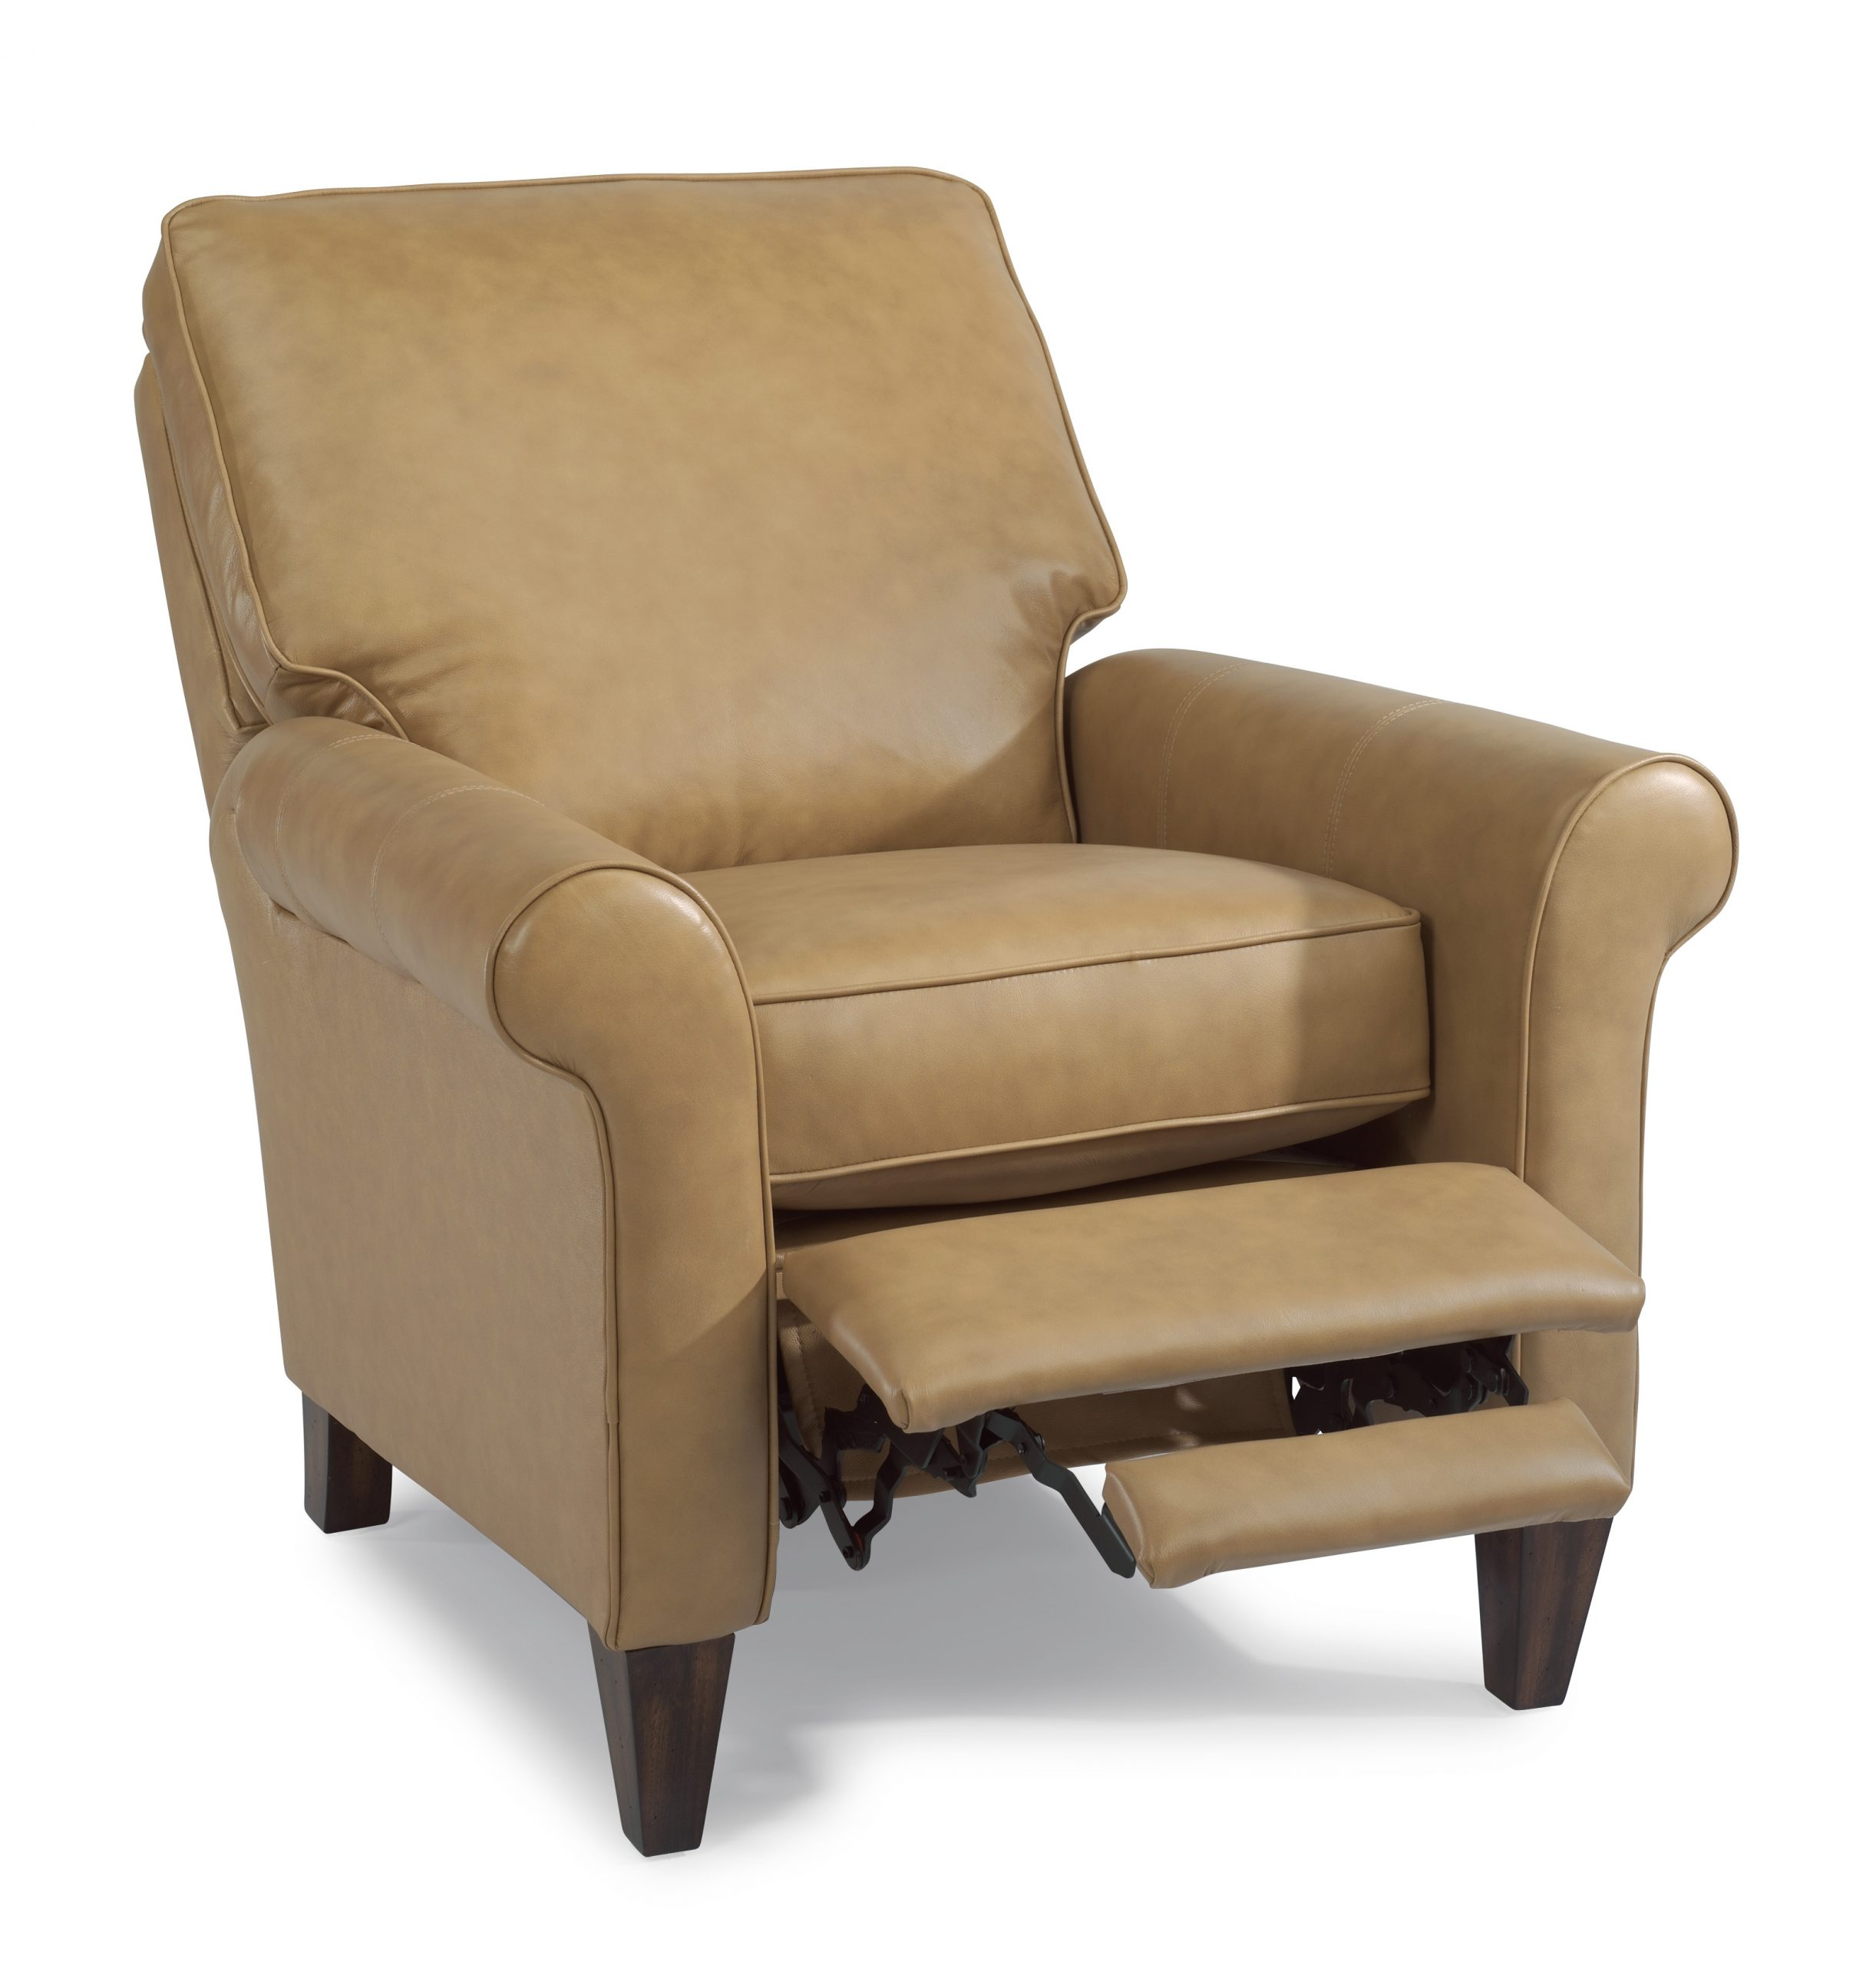 Flexsteel Westside Leather (Hi-Leg Recliner)